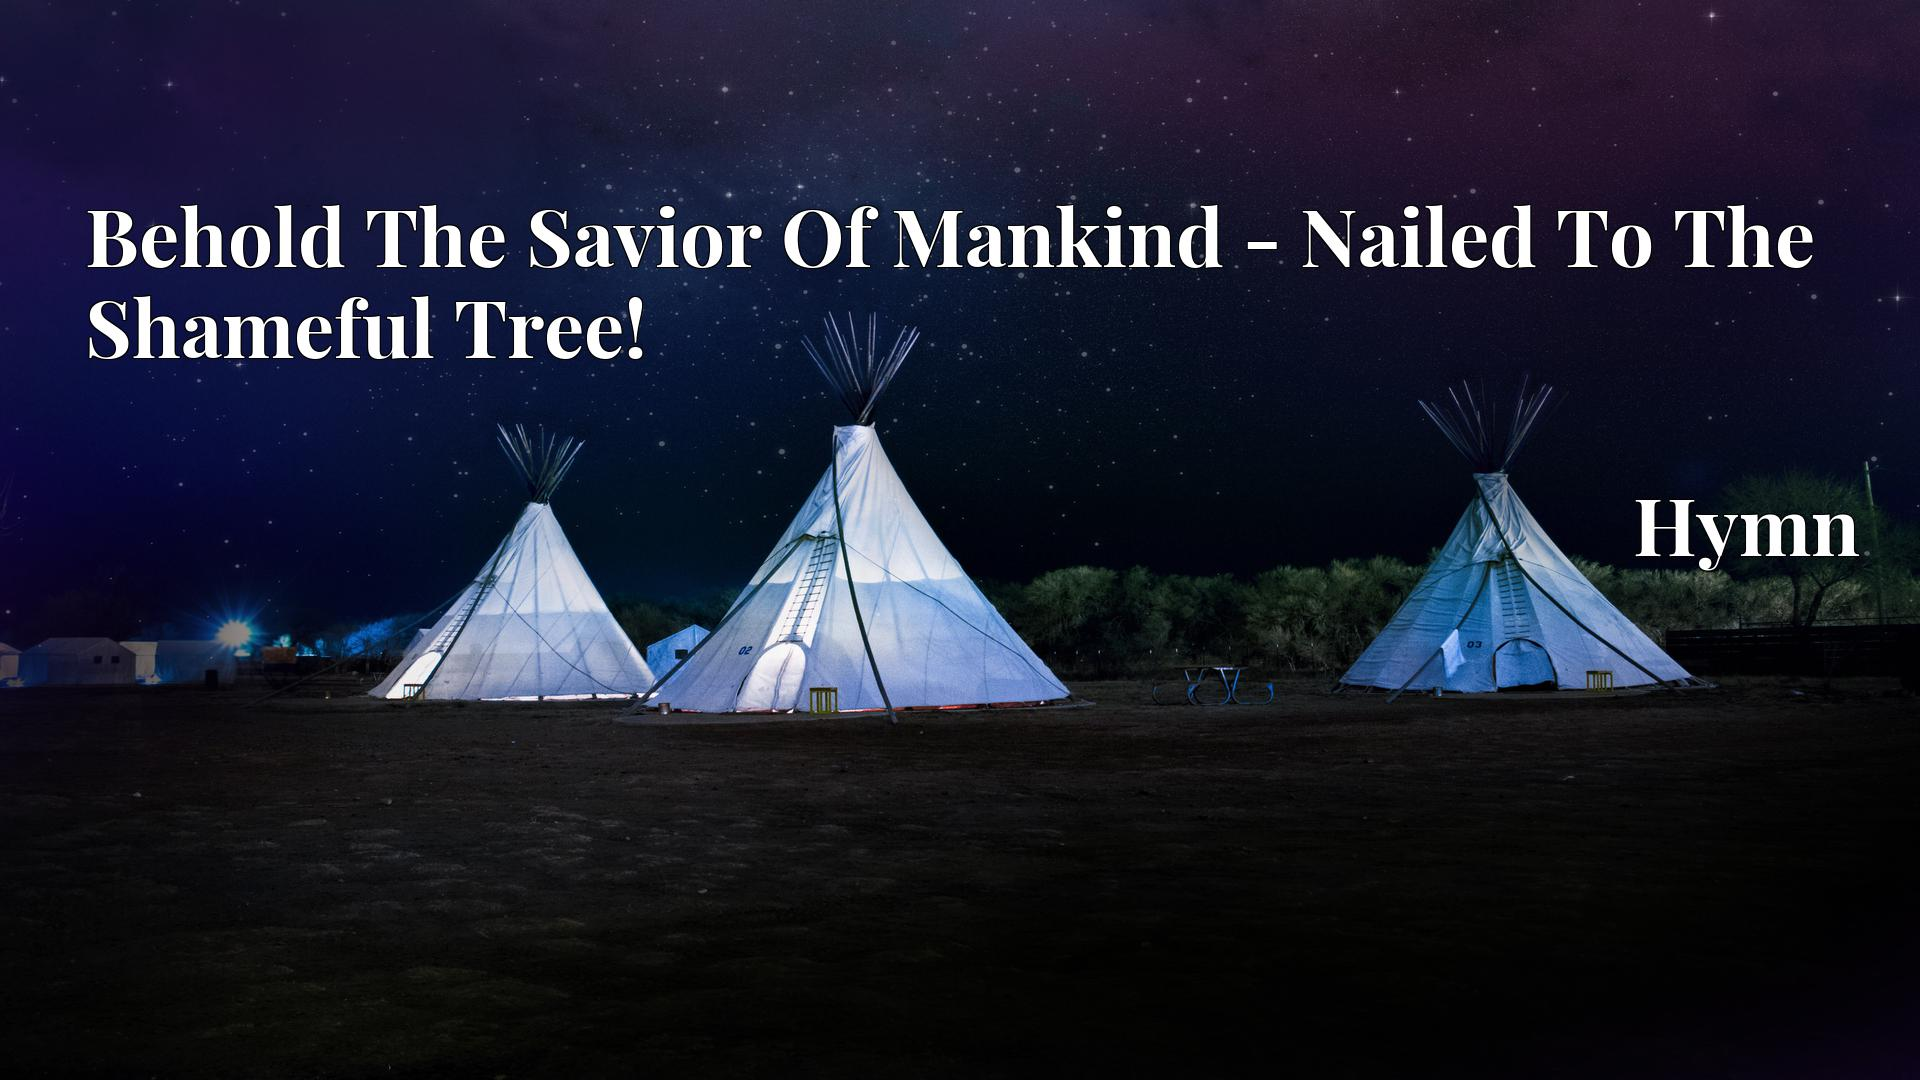 Behold The Savior Of Mankind - Nailed To The Shameful Tree! Hymn